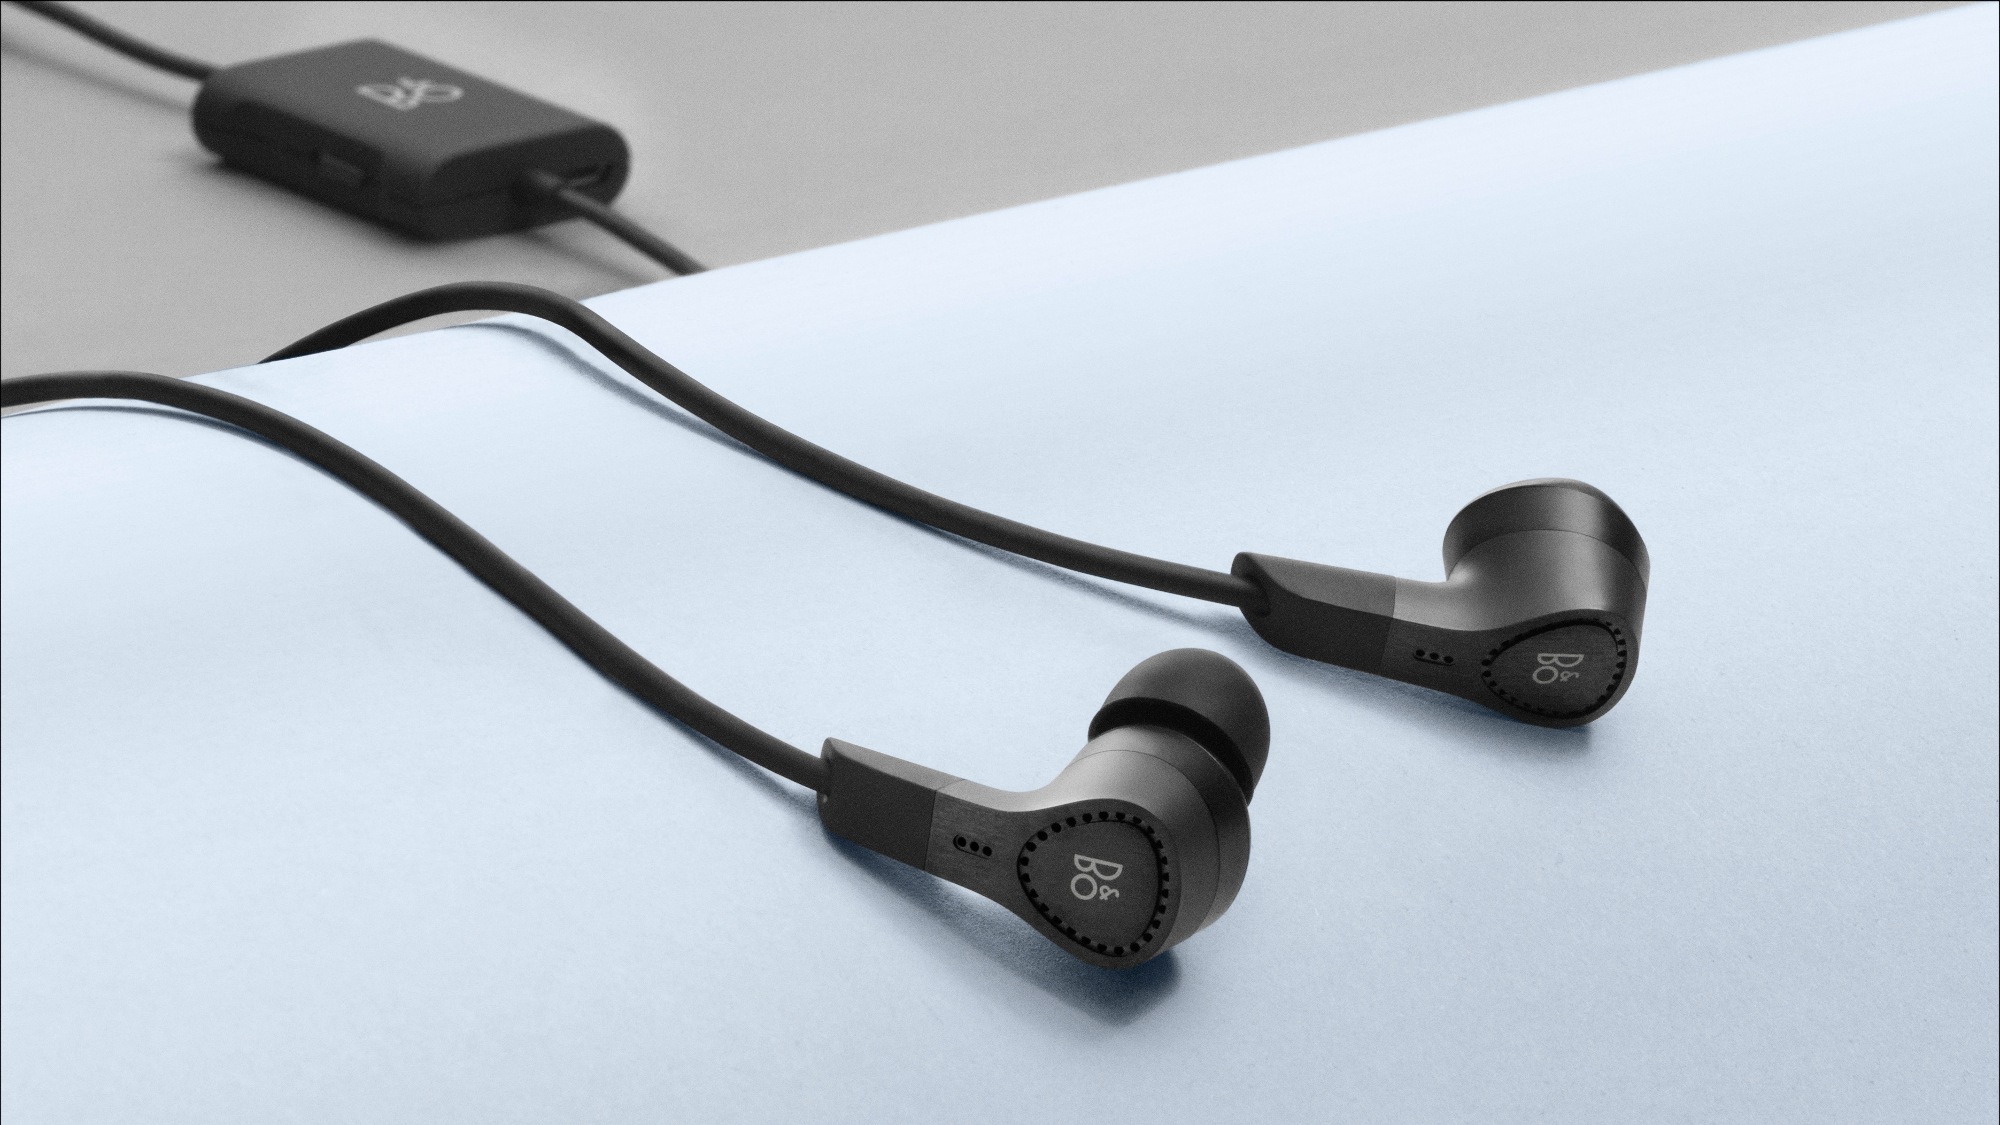 Bang & Olufsen BeoPlay E4 noise-cancelling earbuds